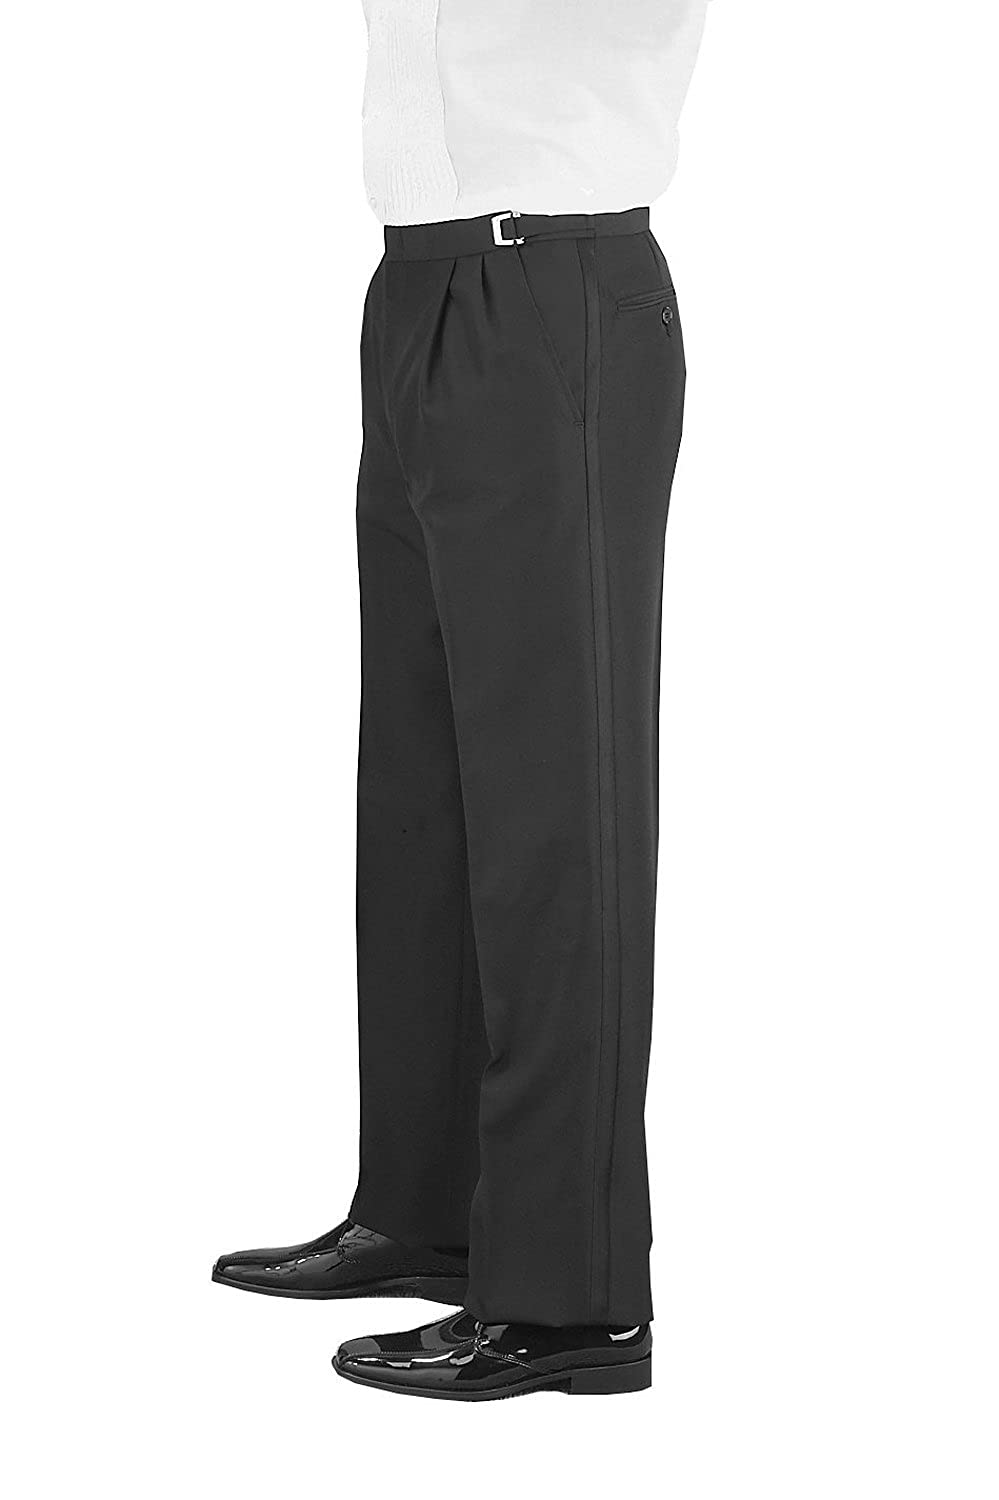 SixStarUniforms Men Black Adjustable Pleated Front Wool Tuxedo Pants 6003-PANTS